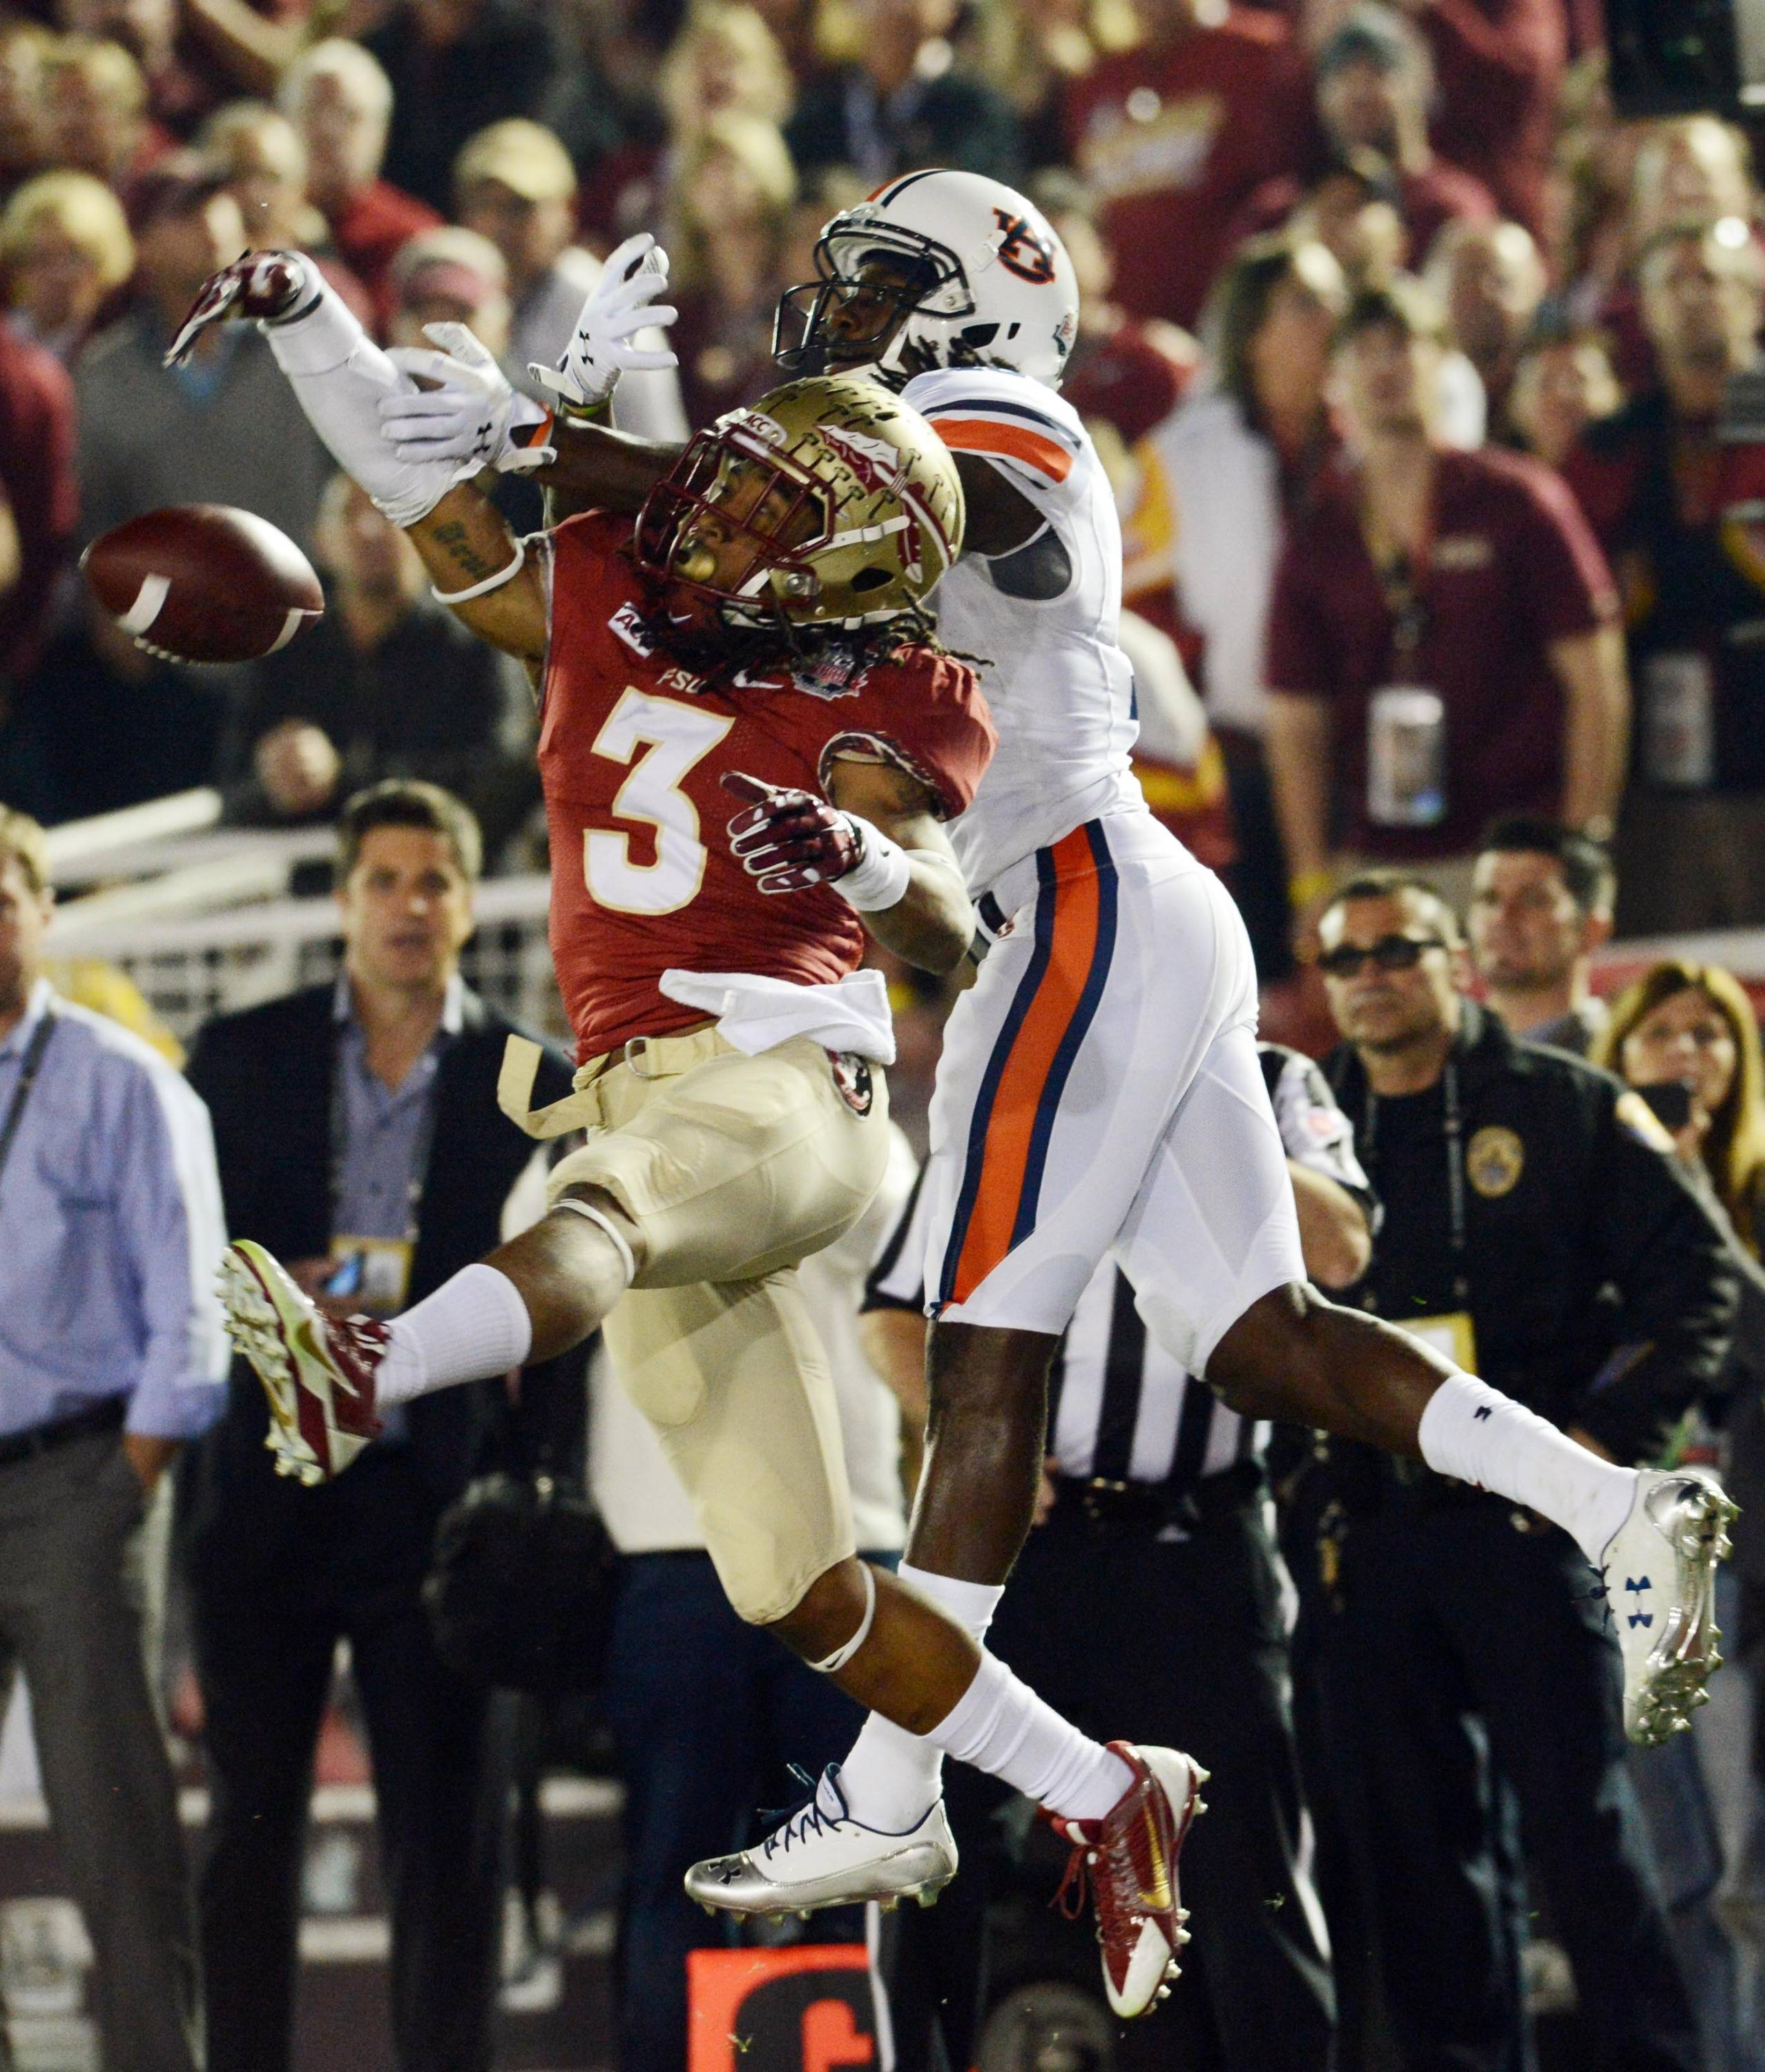 Jan 6, 2014; Pasadena, CA, USA; Florida State Seminoles defensive back Ronald Darby (3) breaks up a pass to Auburn Tigers wide receiver Sammie Coates (18) during the first half of the 2014 BCS National Championship game at the Rose Bowl.  Mandatory Credit: Jayne Kamin-Oncea-USA TODAY Sports